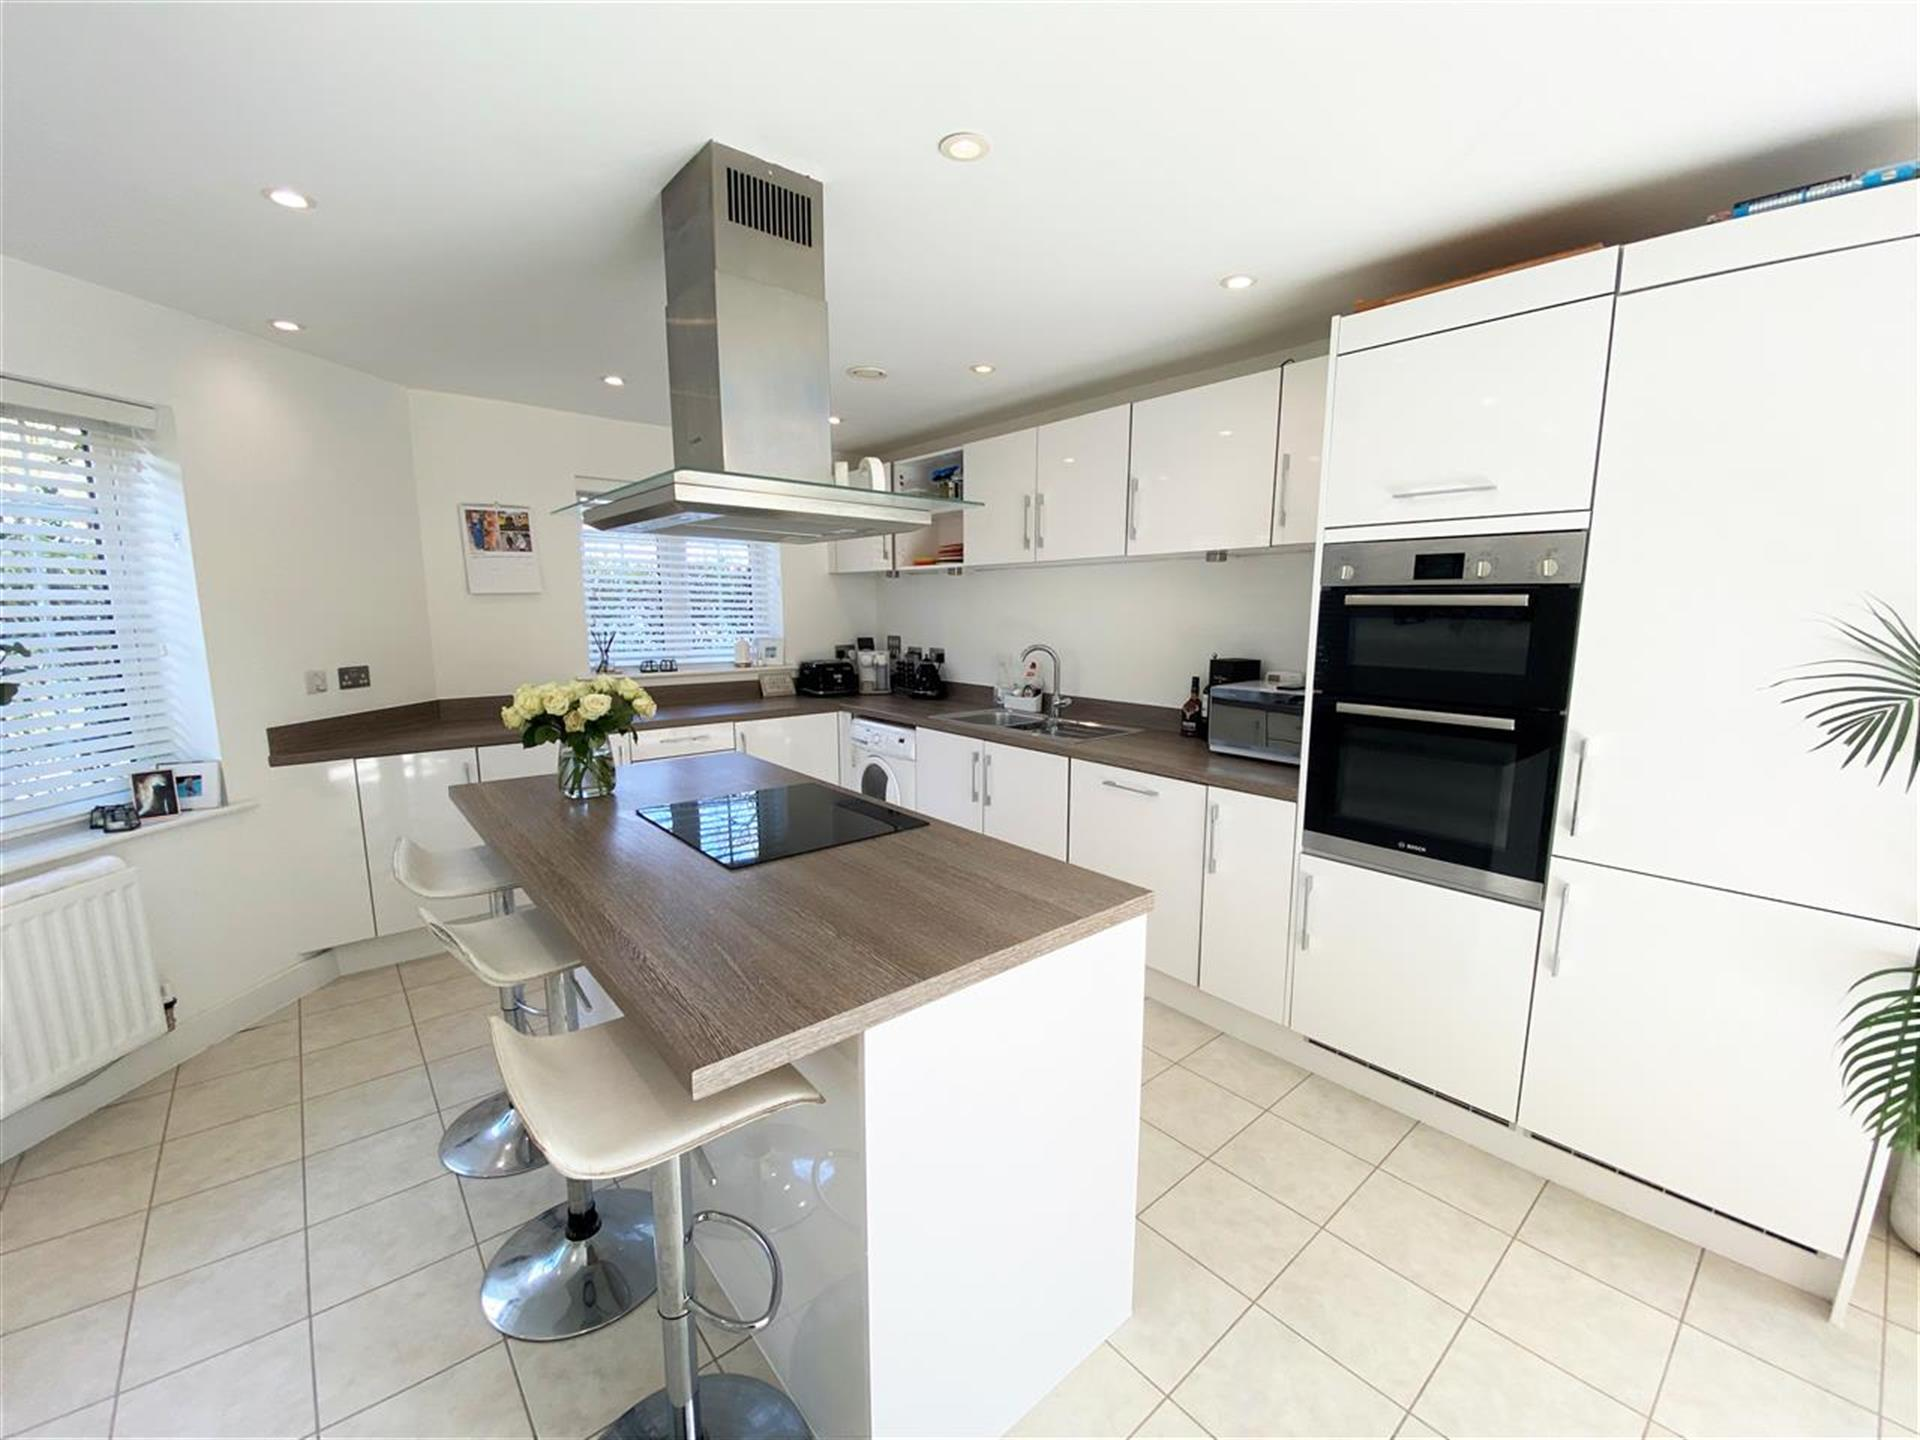 5 Bedroom Detached House For Sale - Luxury Fitted Kitchen